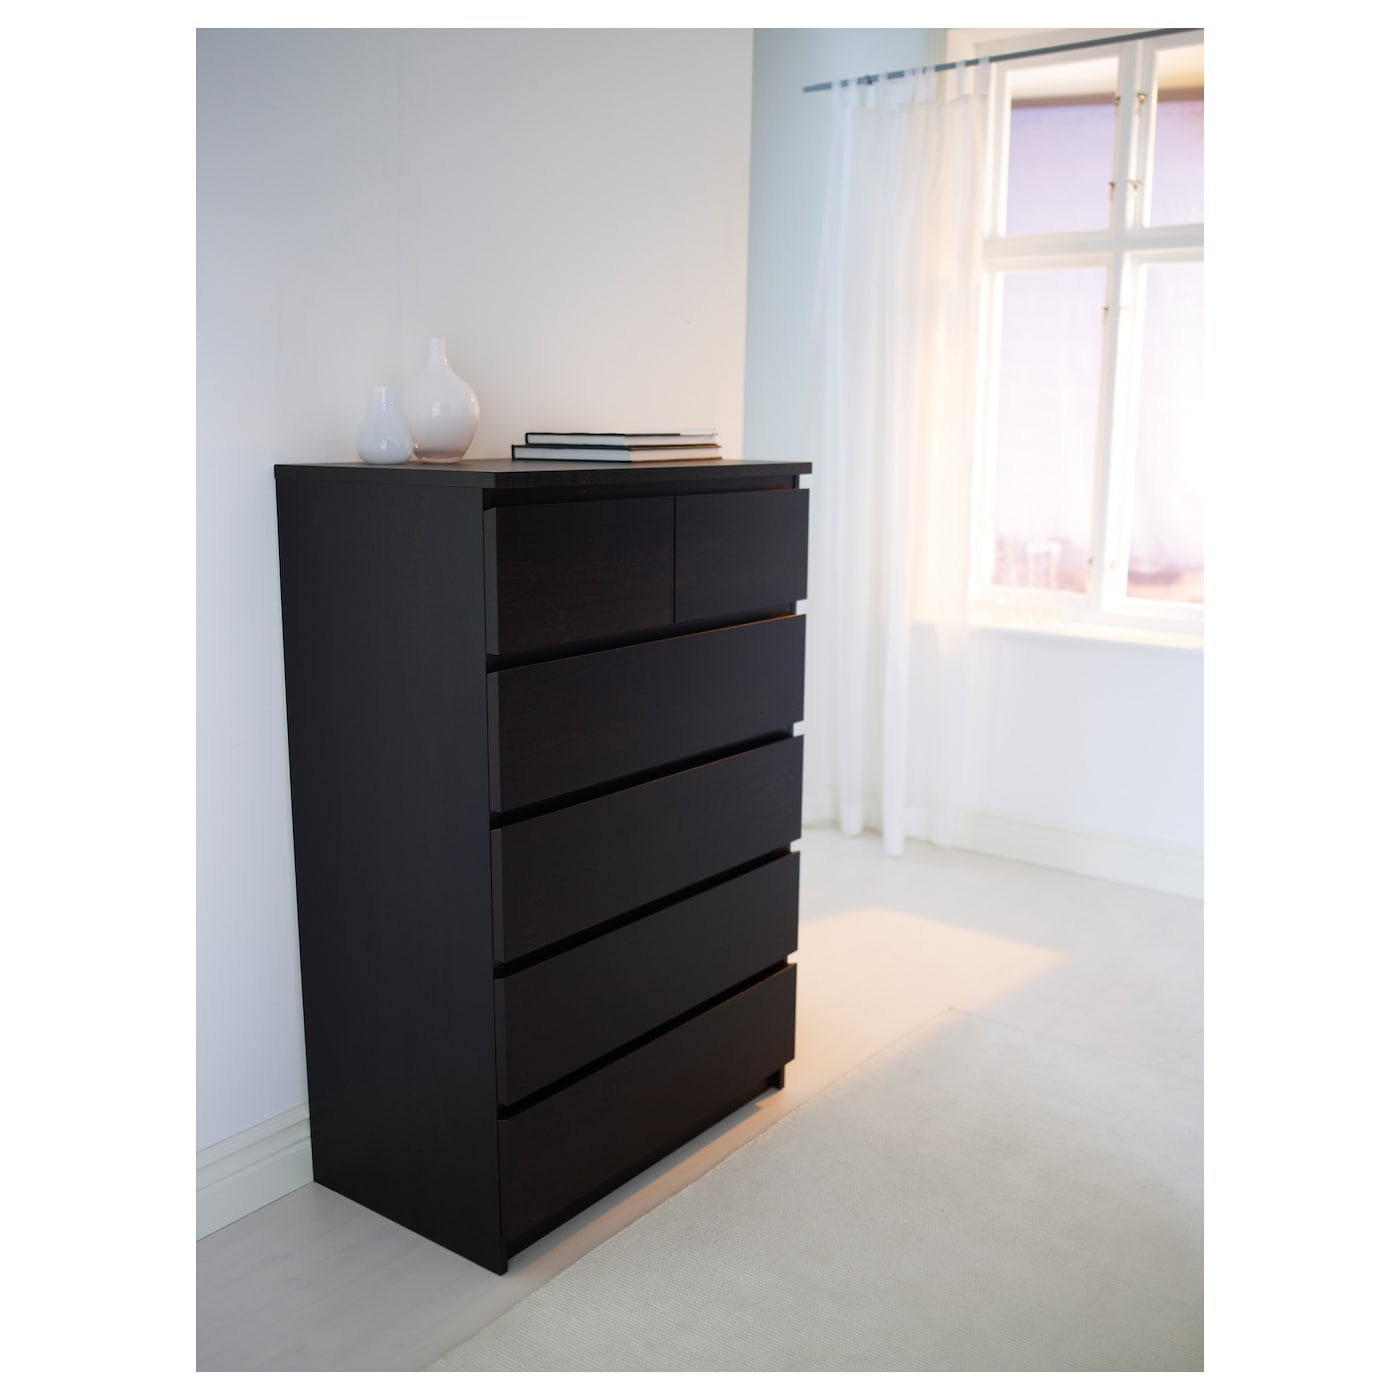 Ikea Malm Chest Of Drawers ~ Malm chest of drawers black brown cm ikea